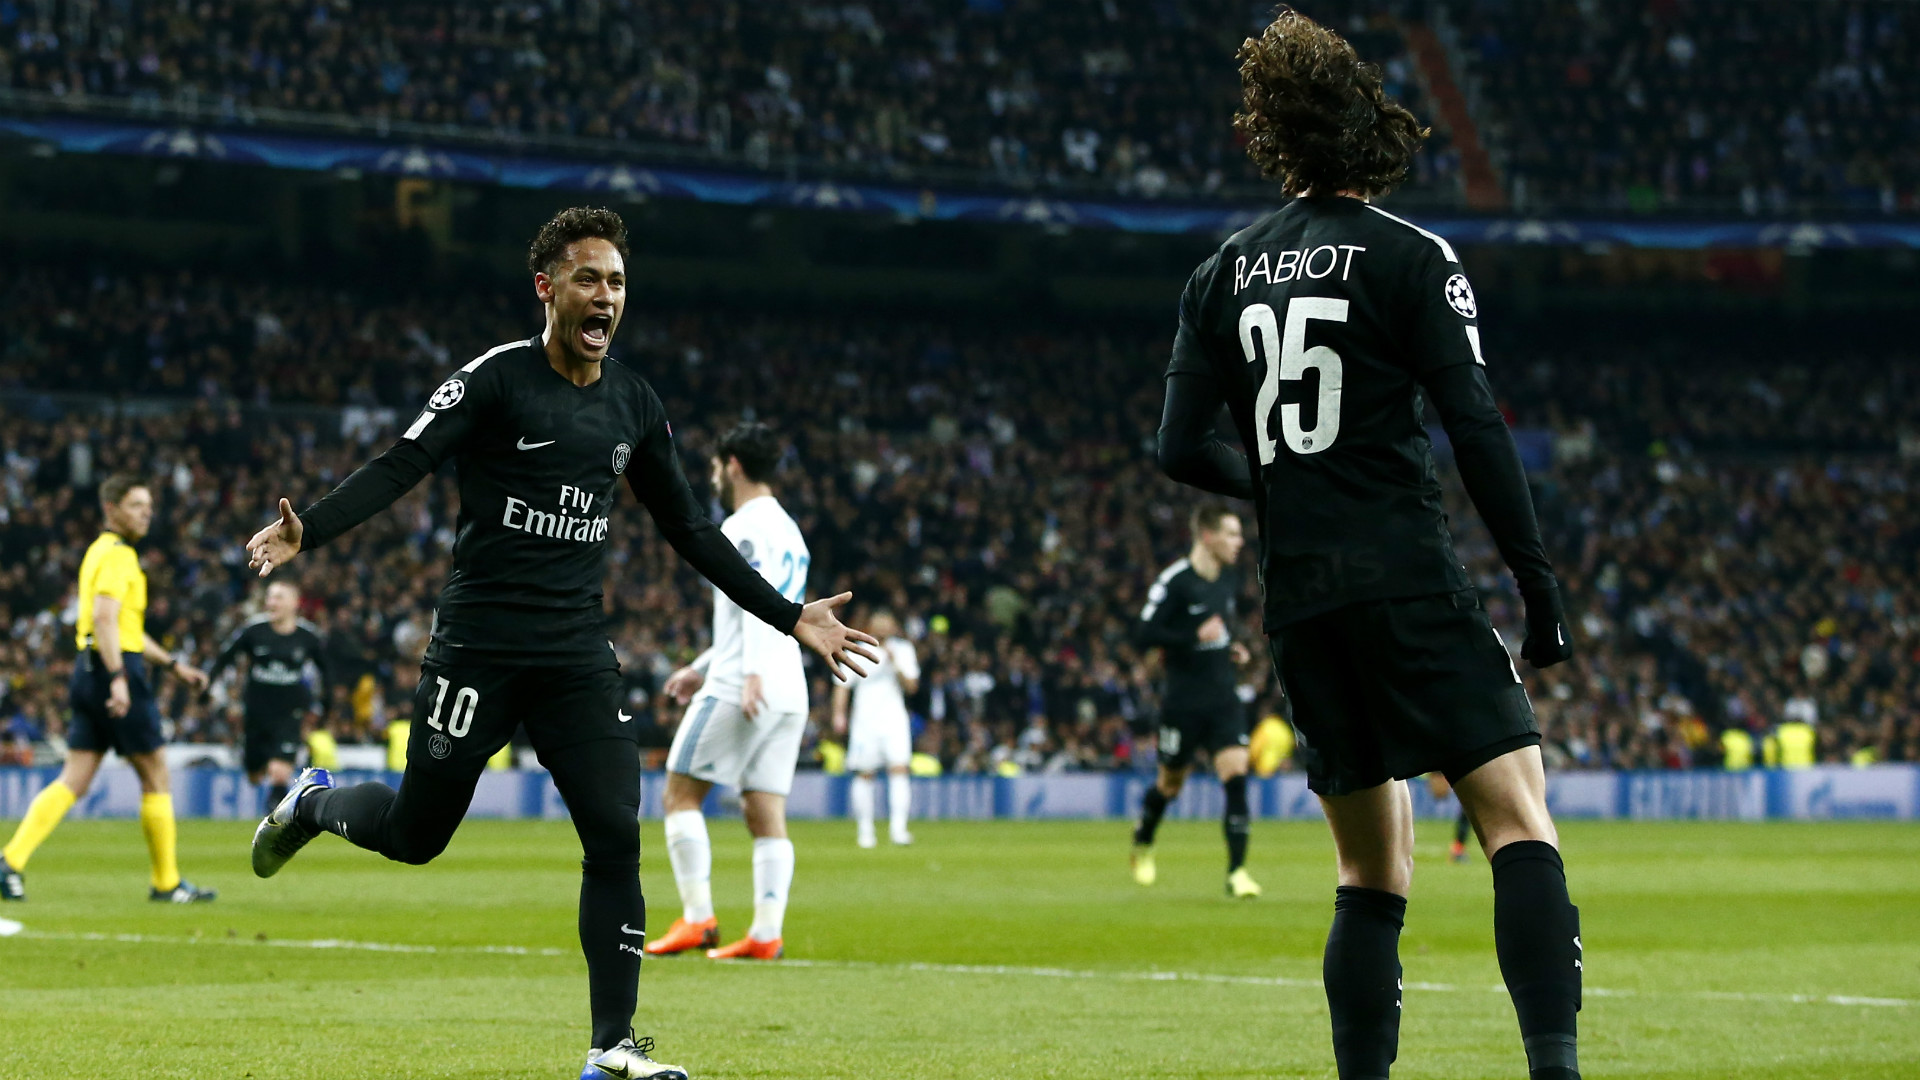 Neymar Rabiot Real Madrid PSG Champions League